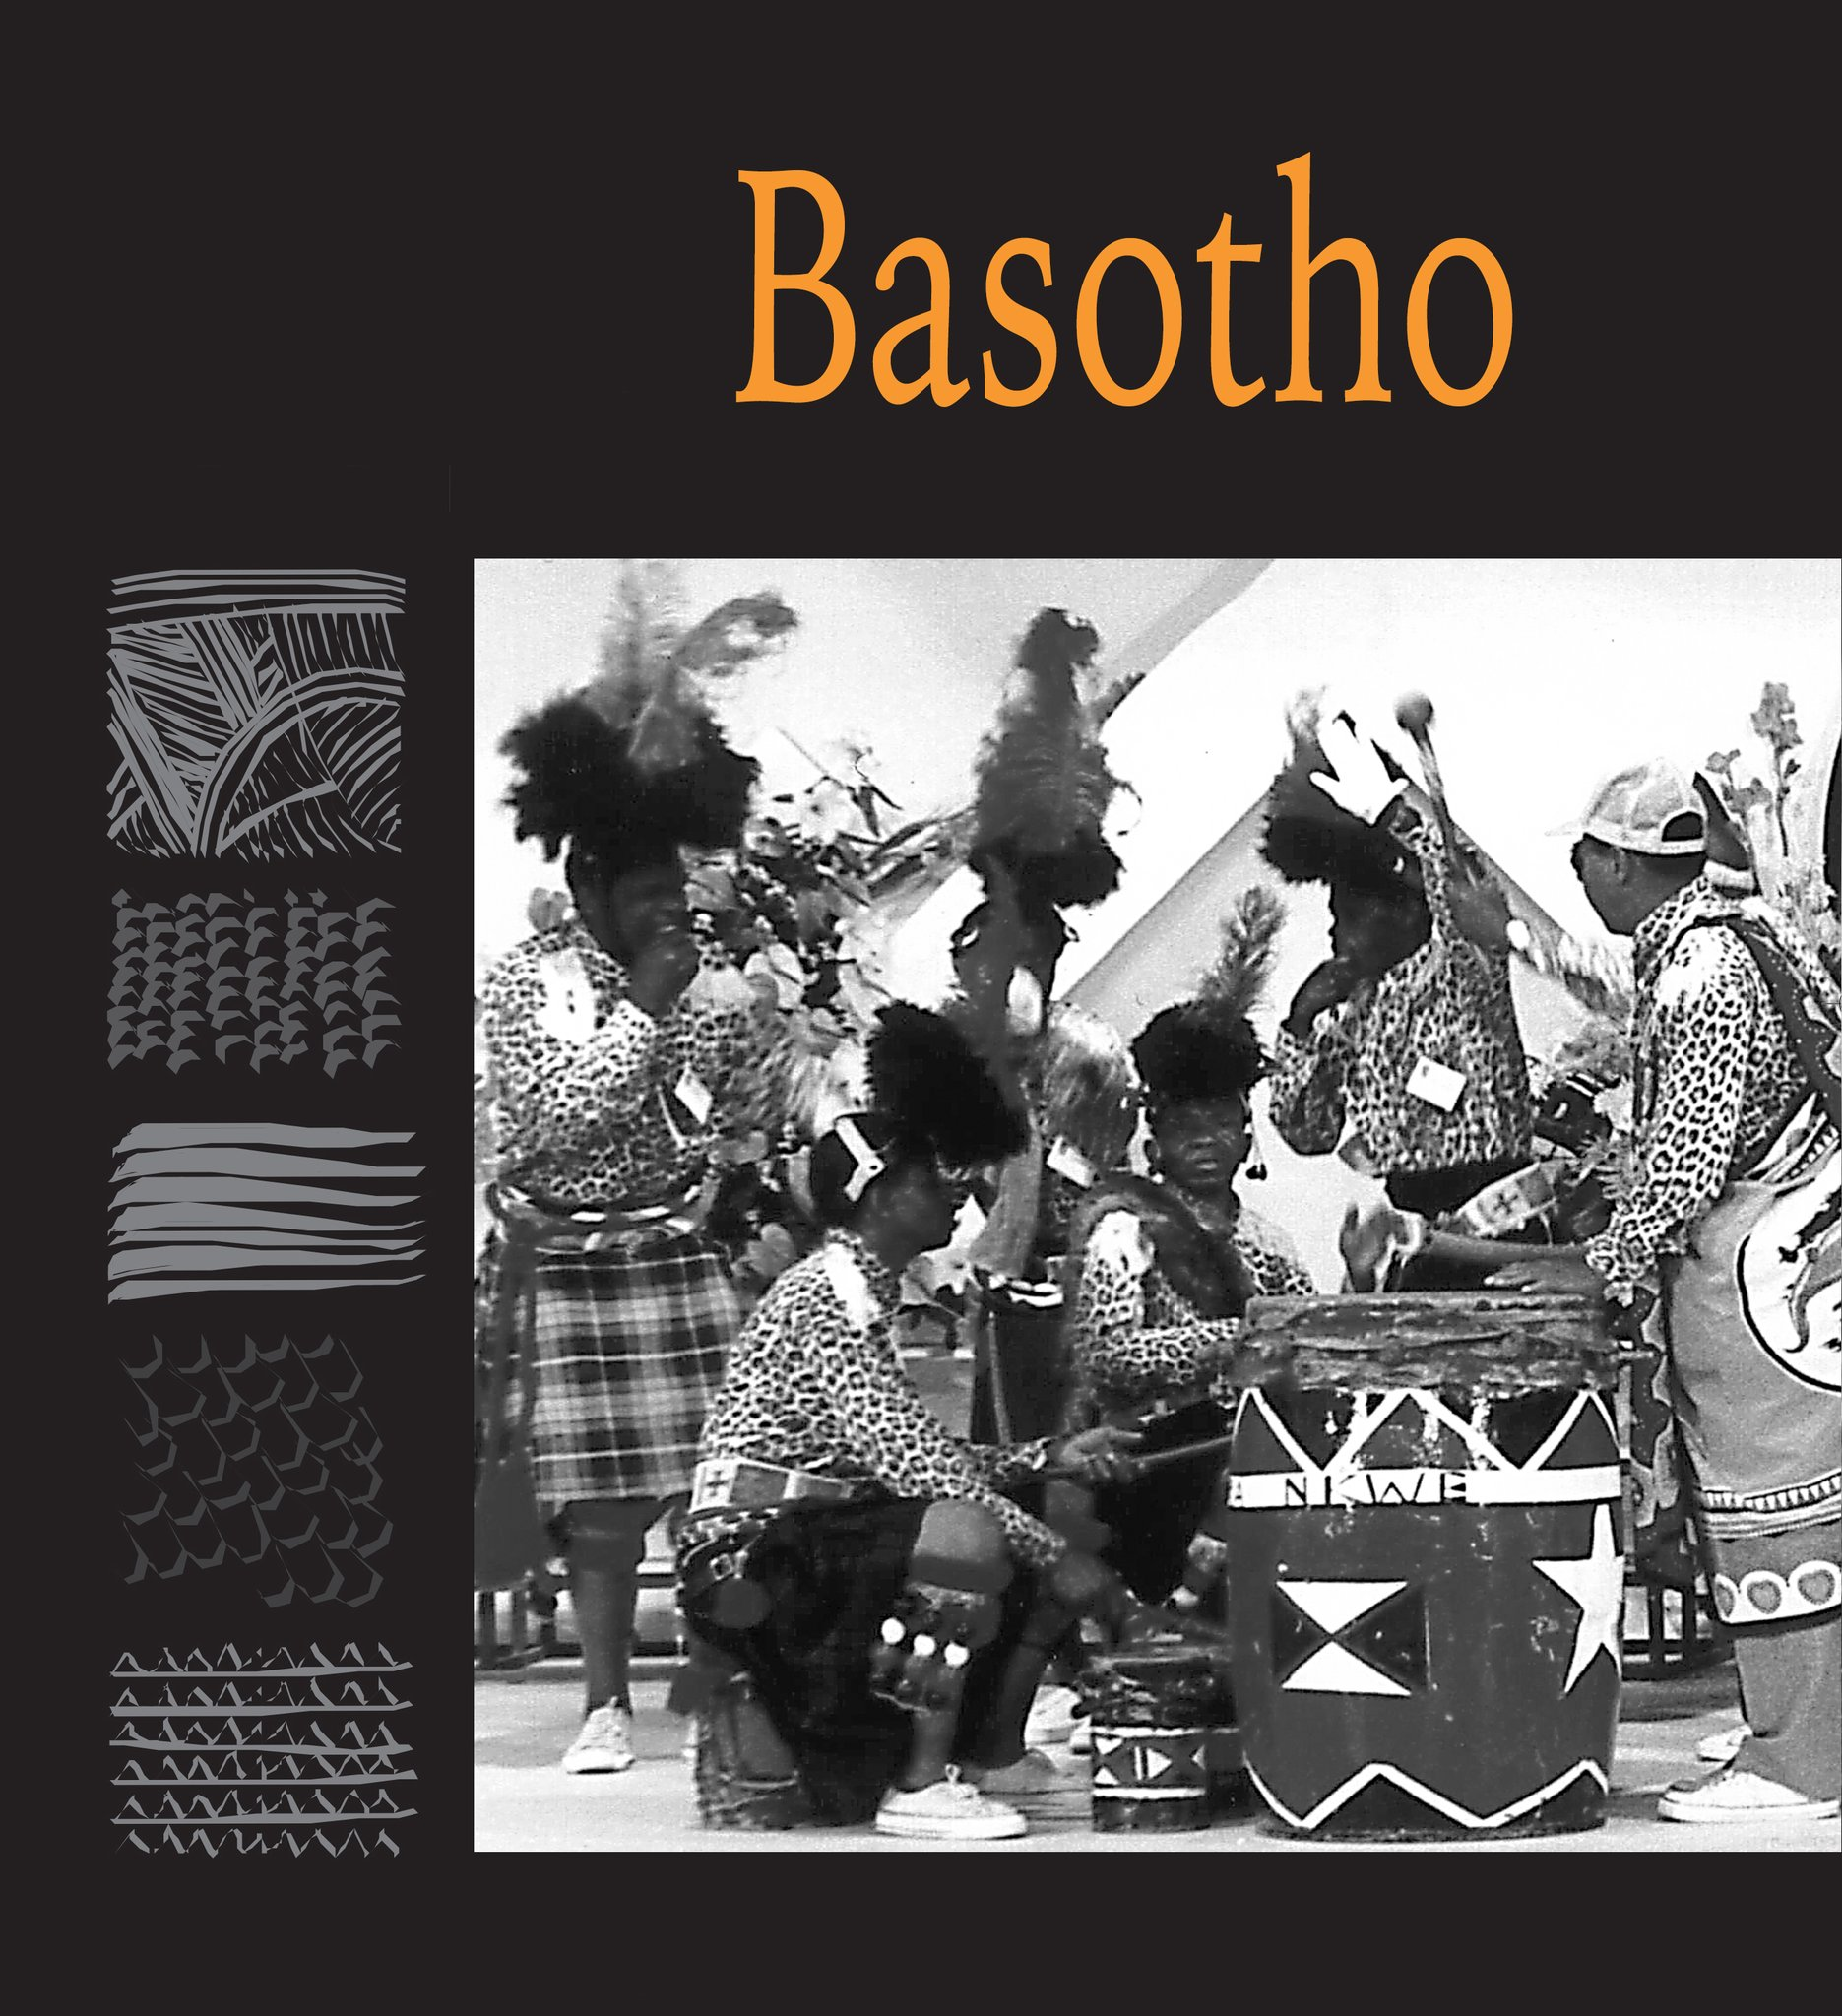 Chapter 5 - Basotho - 'Traditional Music of South Africa'